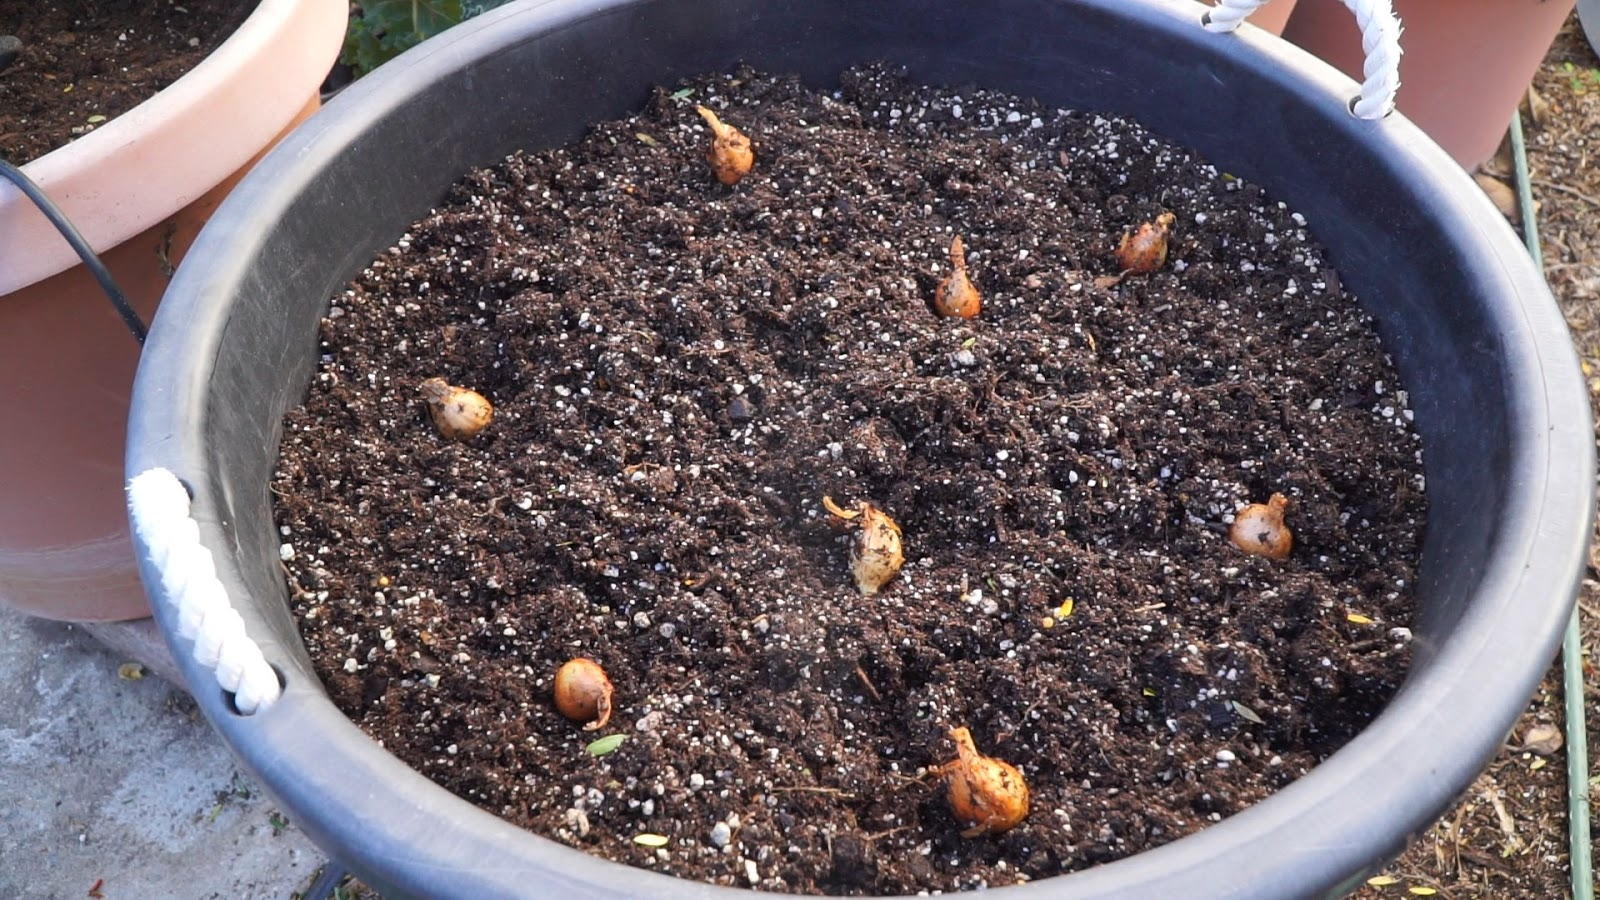 California Gardening: Growing Shallots in Containers